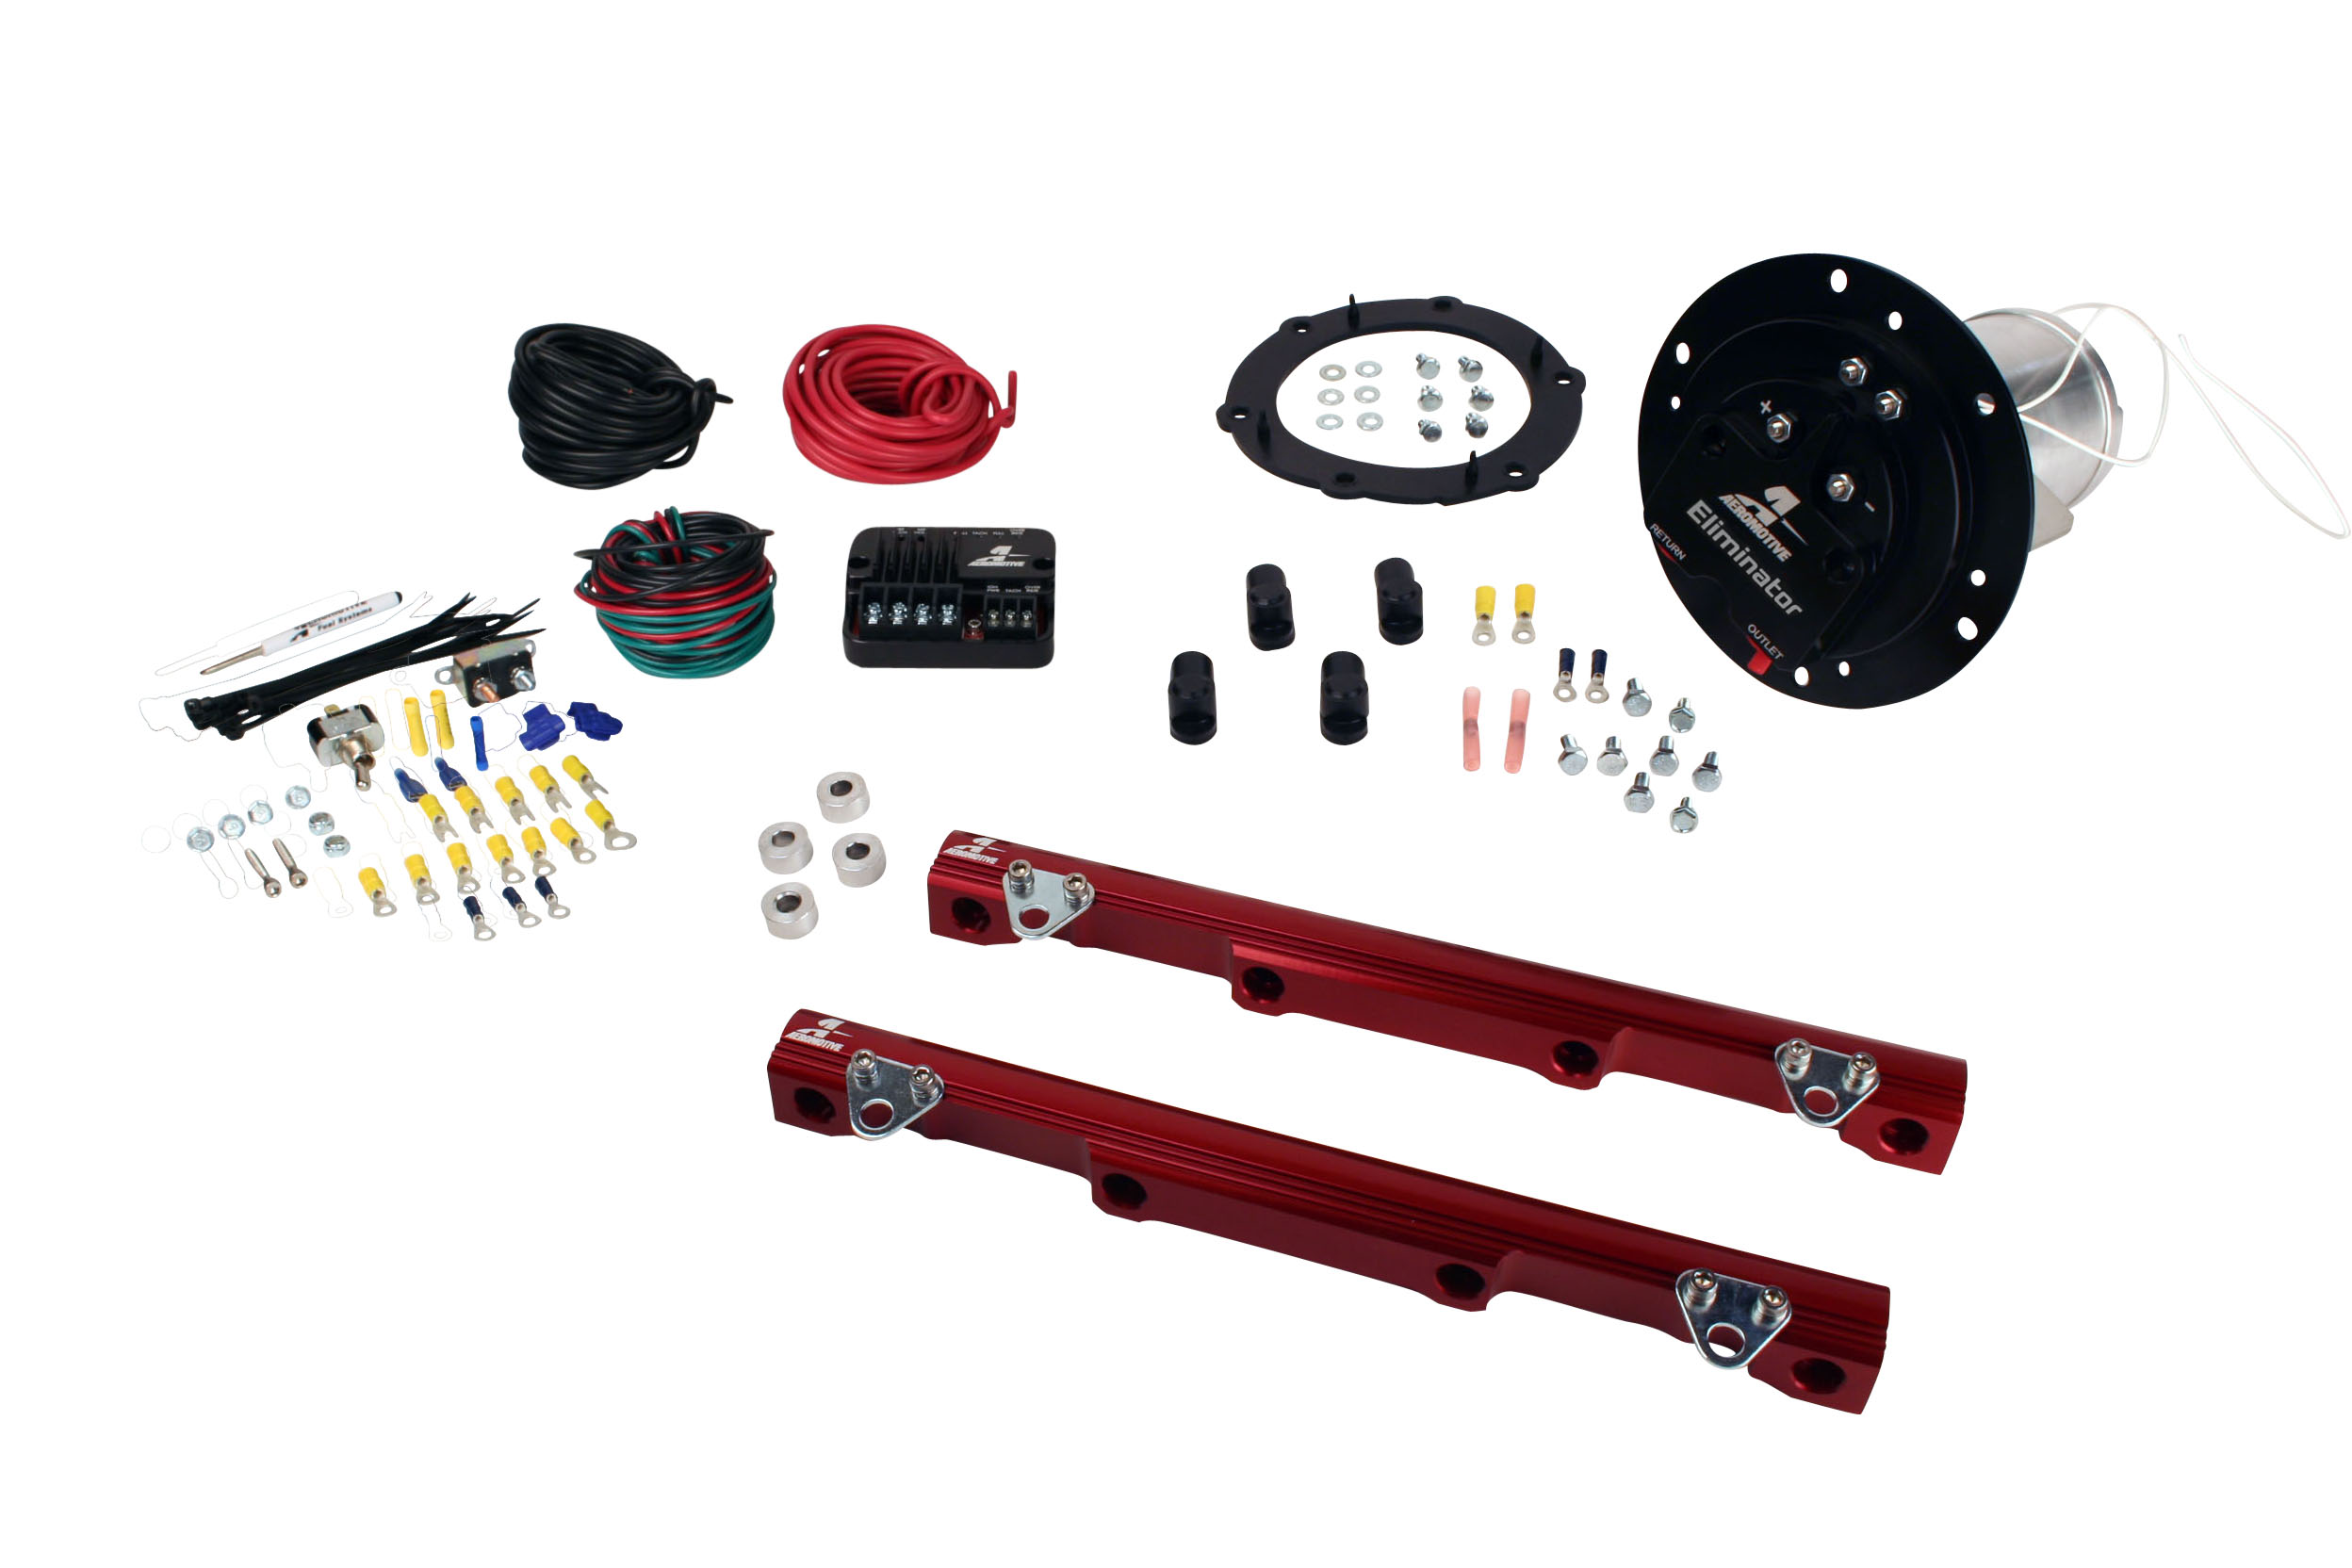 2003-2004 Ford Mustang Cobra Aeromotive Stealth A1000 Street Fuel System